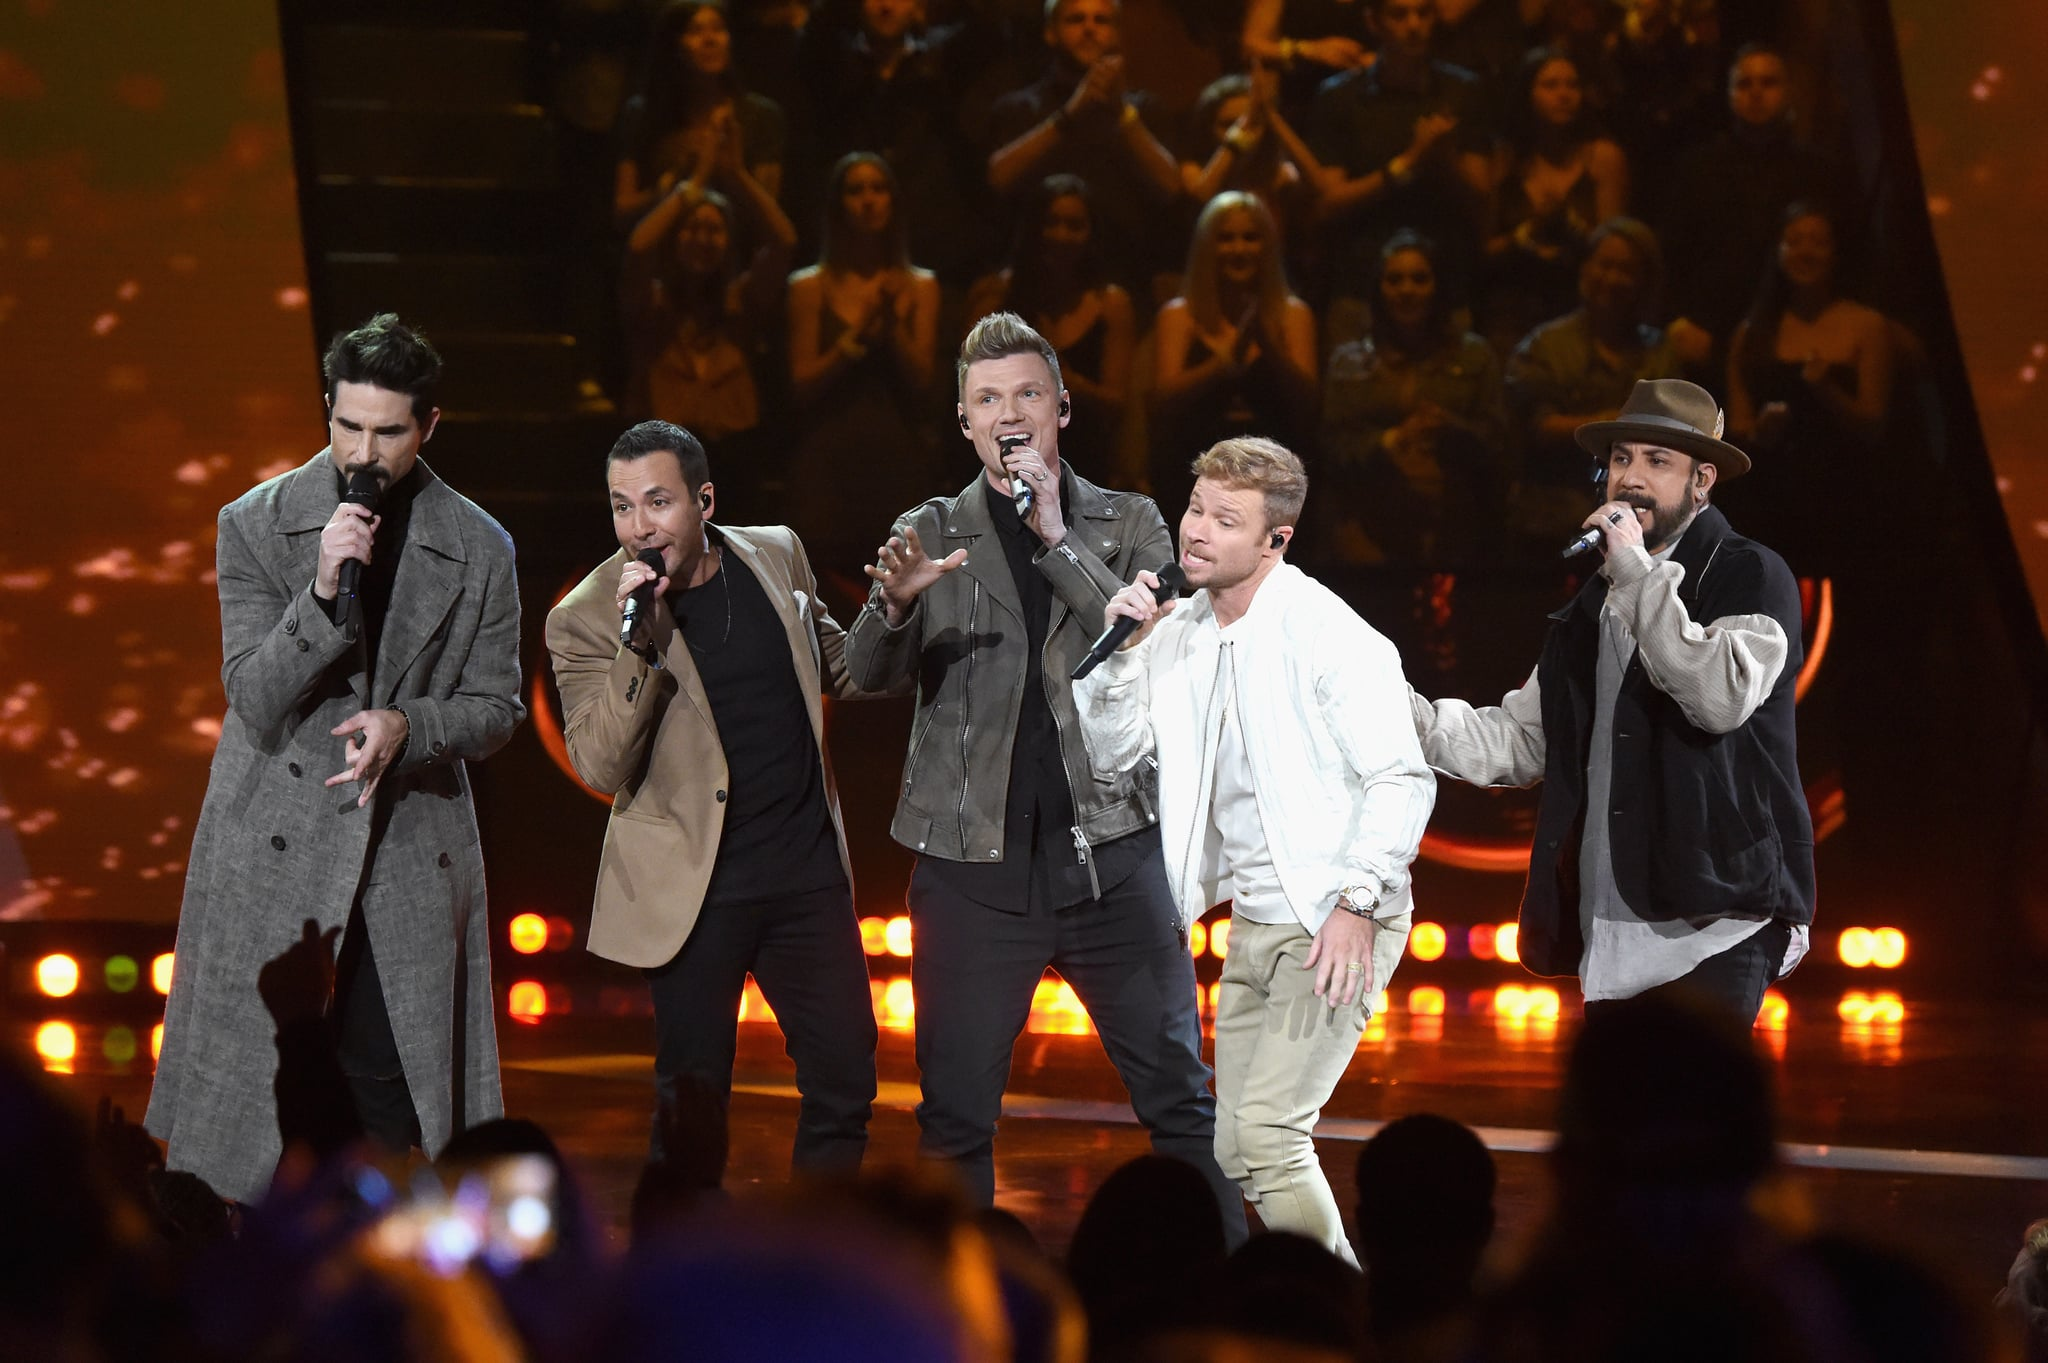 LOS ANGELES, CALIFORNIA - MARCH 14: (EDITORIAL USE ONLY. NO COMMERCIAL USE)  The Backstreet Boys perform on stage at the 2019 iHeartRadio Music Awards which broadcasted live on FOX at Microsoft Theater on March 14, 2019 in Los Angeles, California. (Photo by Kevin Mazur/Getty Images for iHeartMedia)